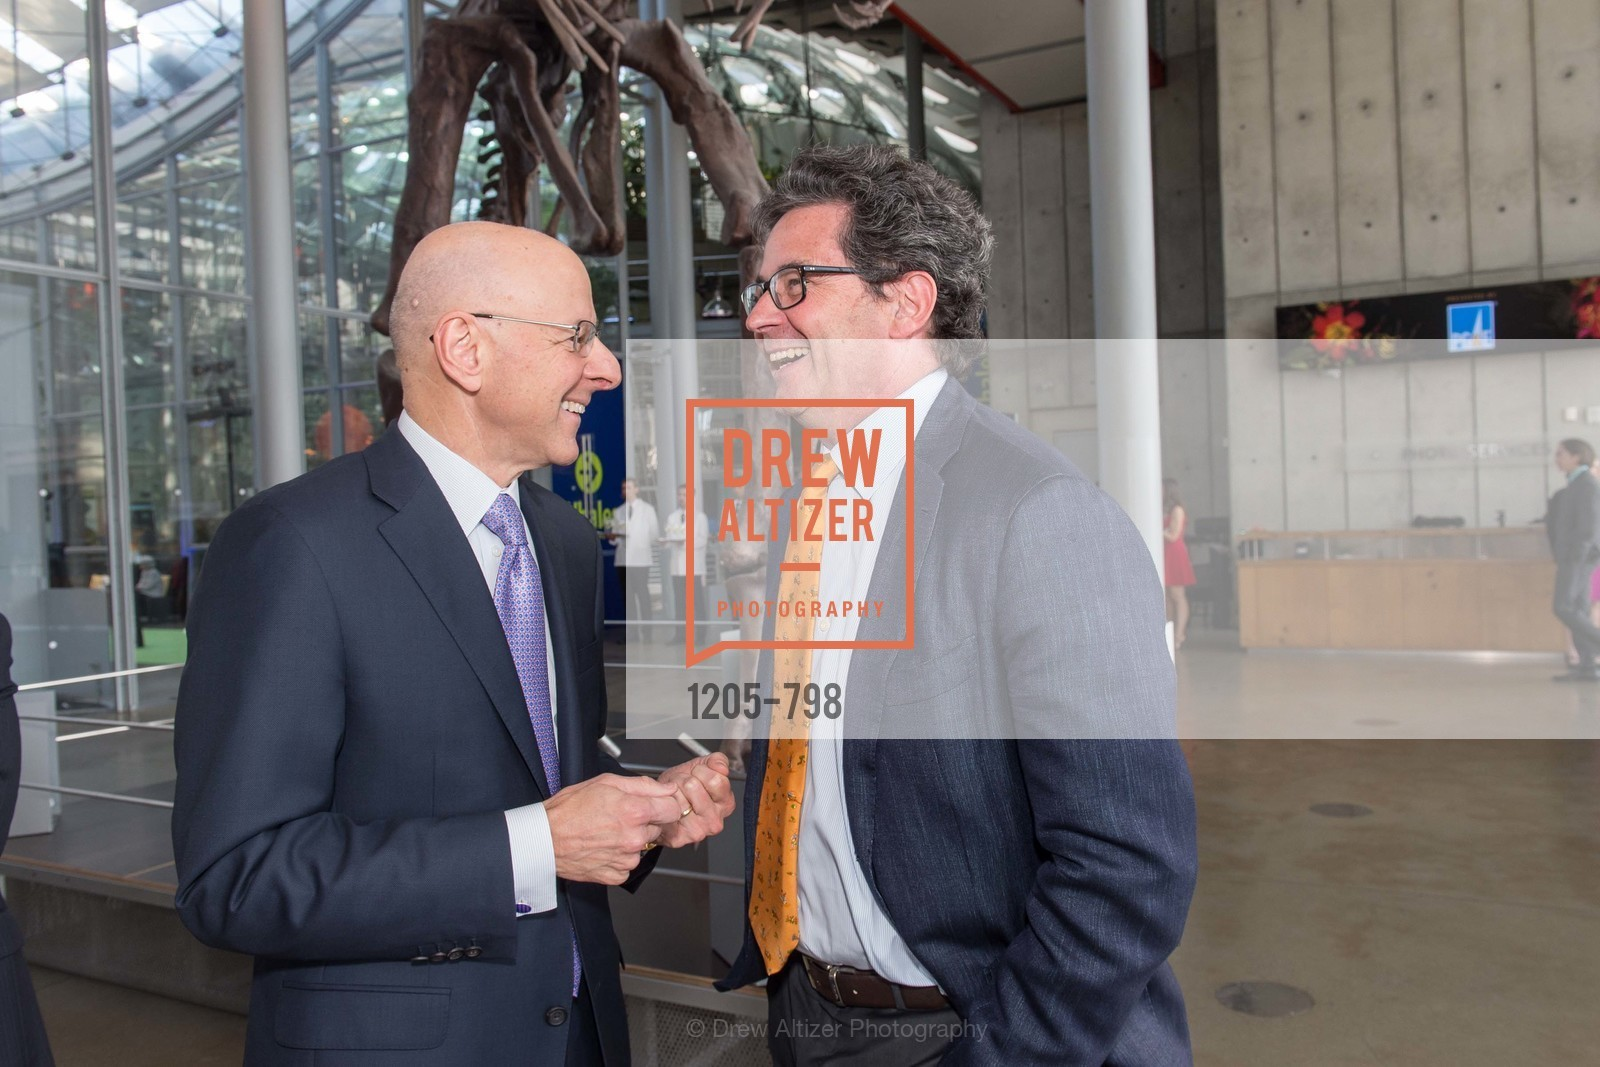 George Cogan, Jerome Vascellaro, CALIFORNIA ACADEMY OF SCIENCES - Big Bang Gala 2015, US, April 23rd, 2015,Drew Altizer, Drew Altizer Photography, full-service agency, private events, San Francisco photographer, photographer california